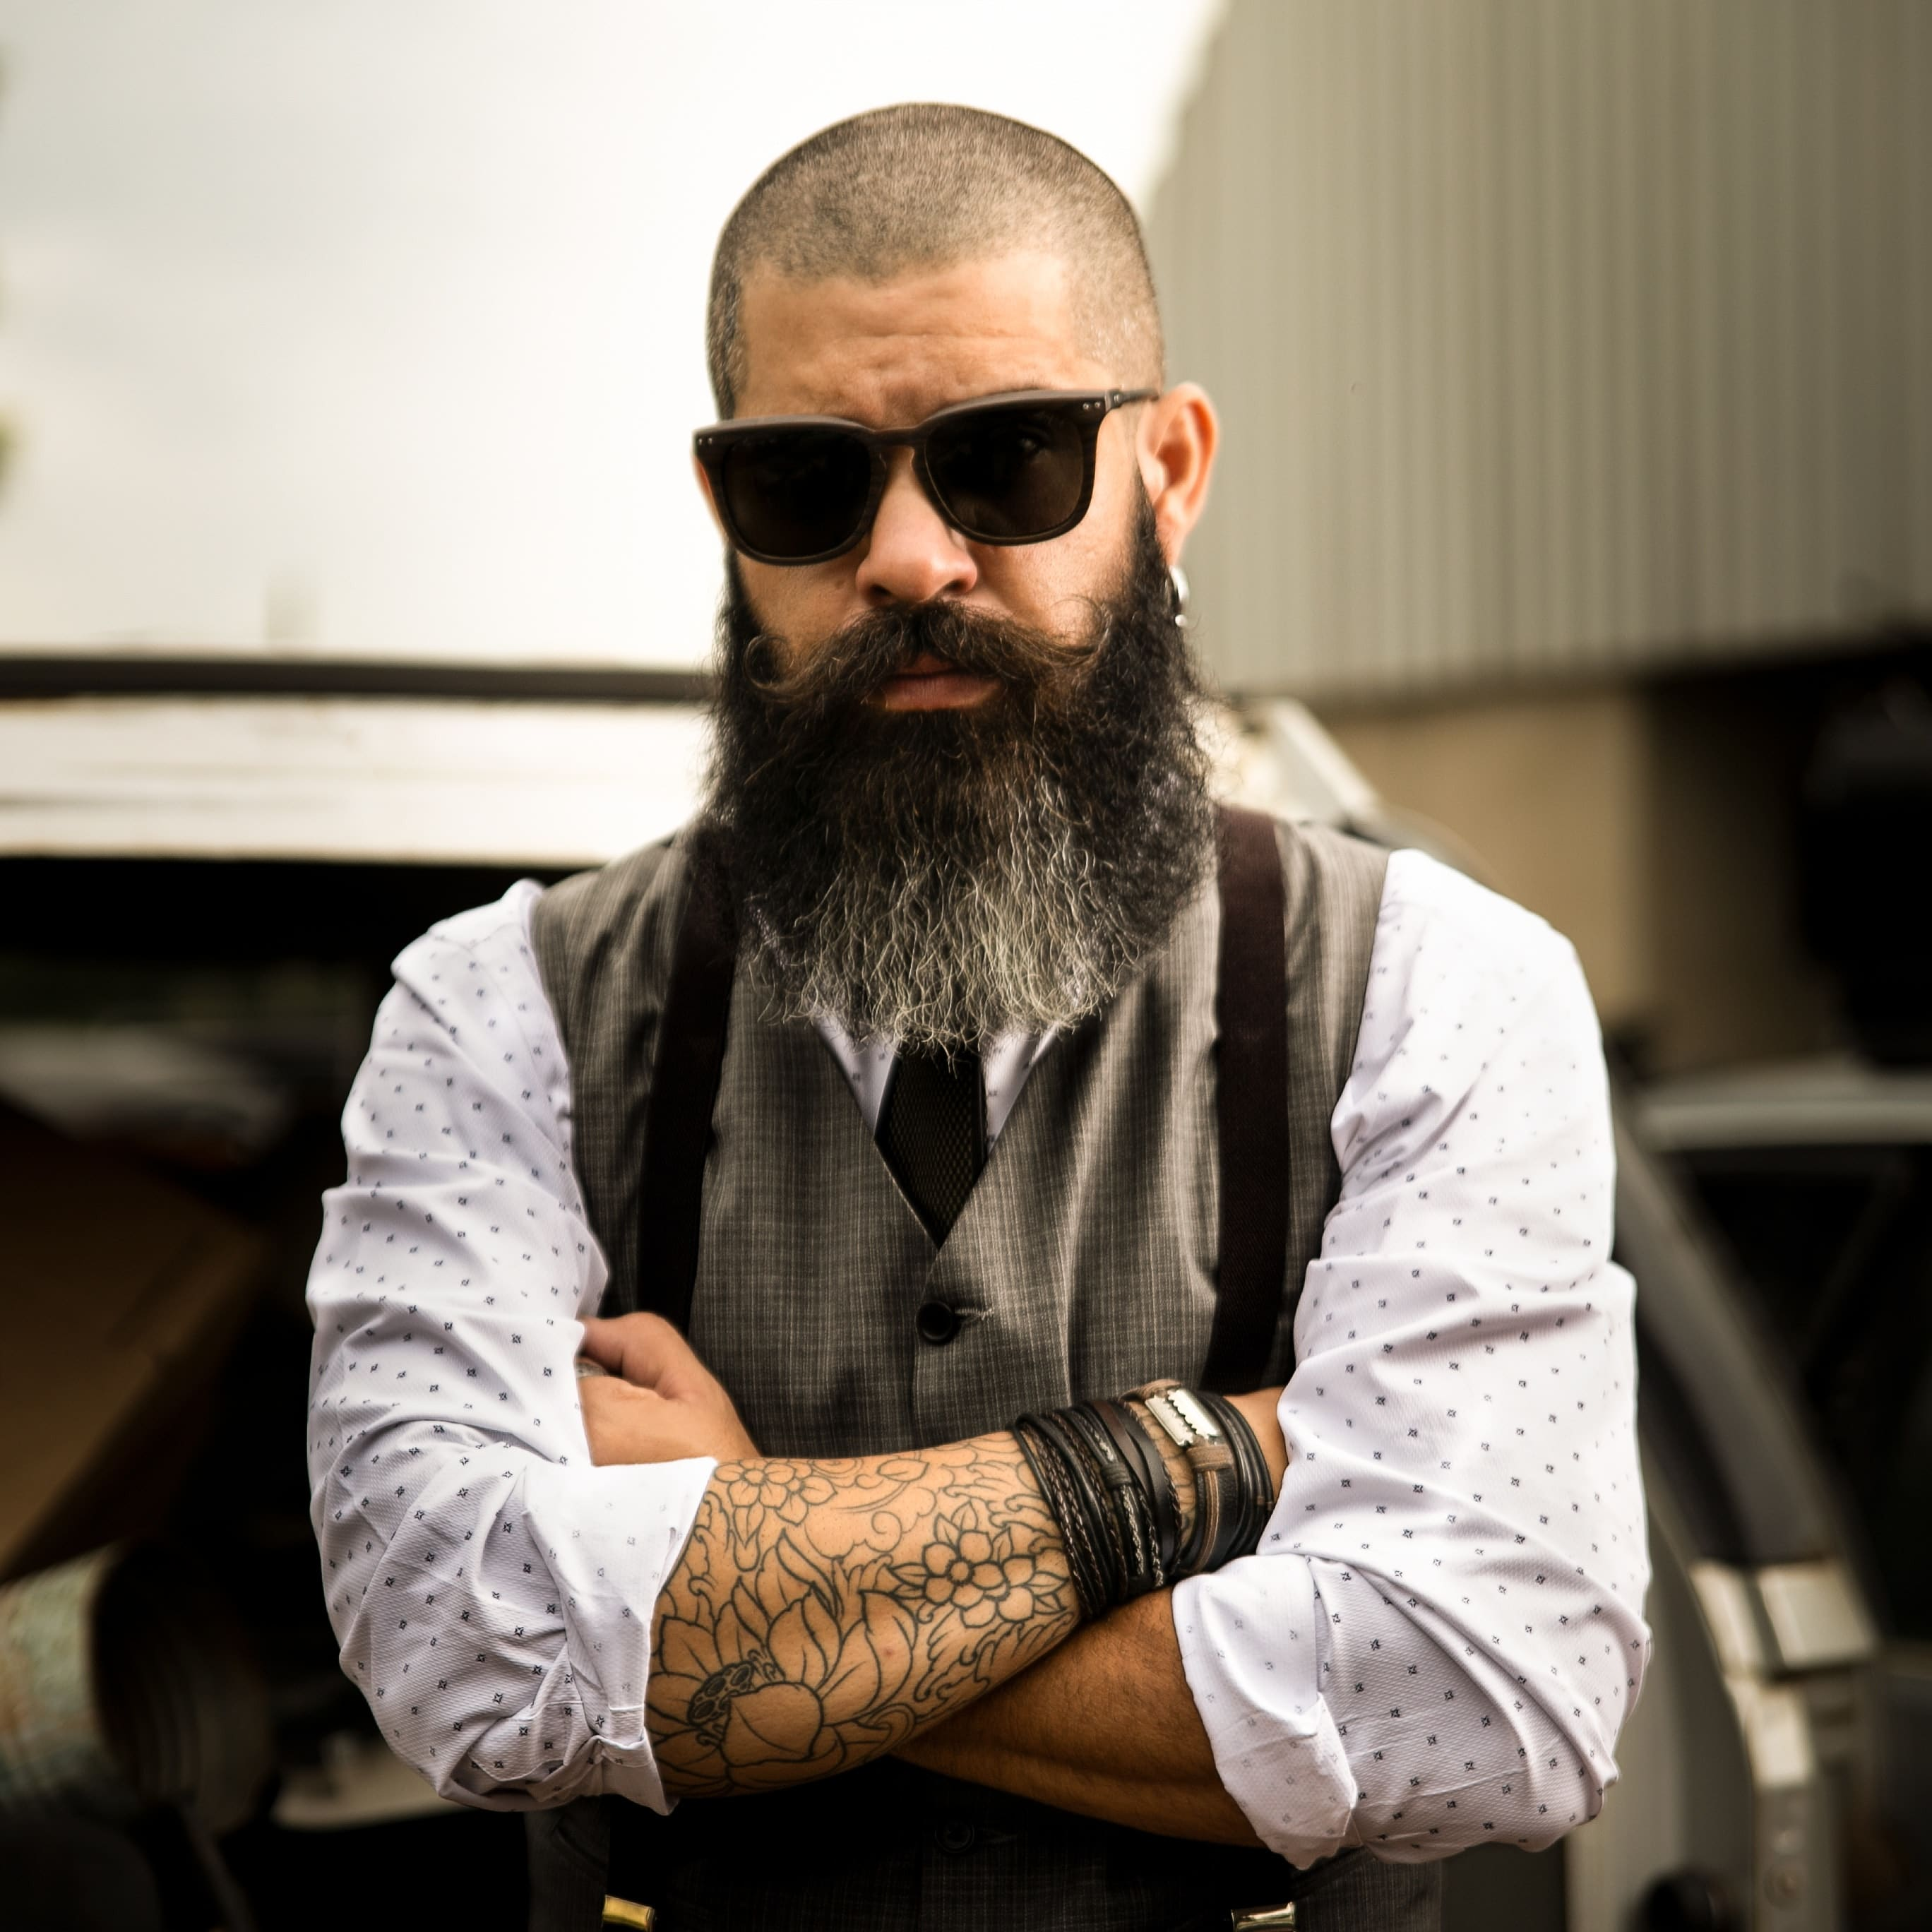 10 Latest Beard Styles and How to Manage Them